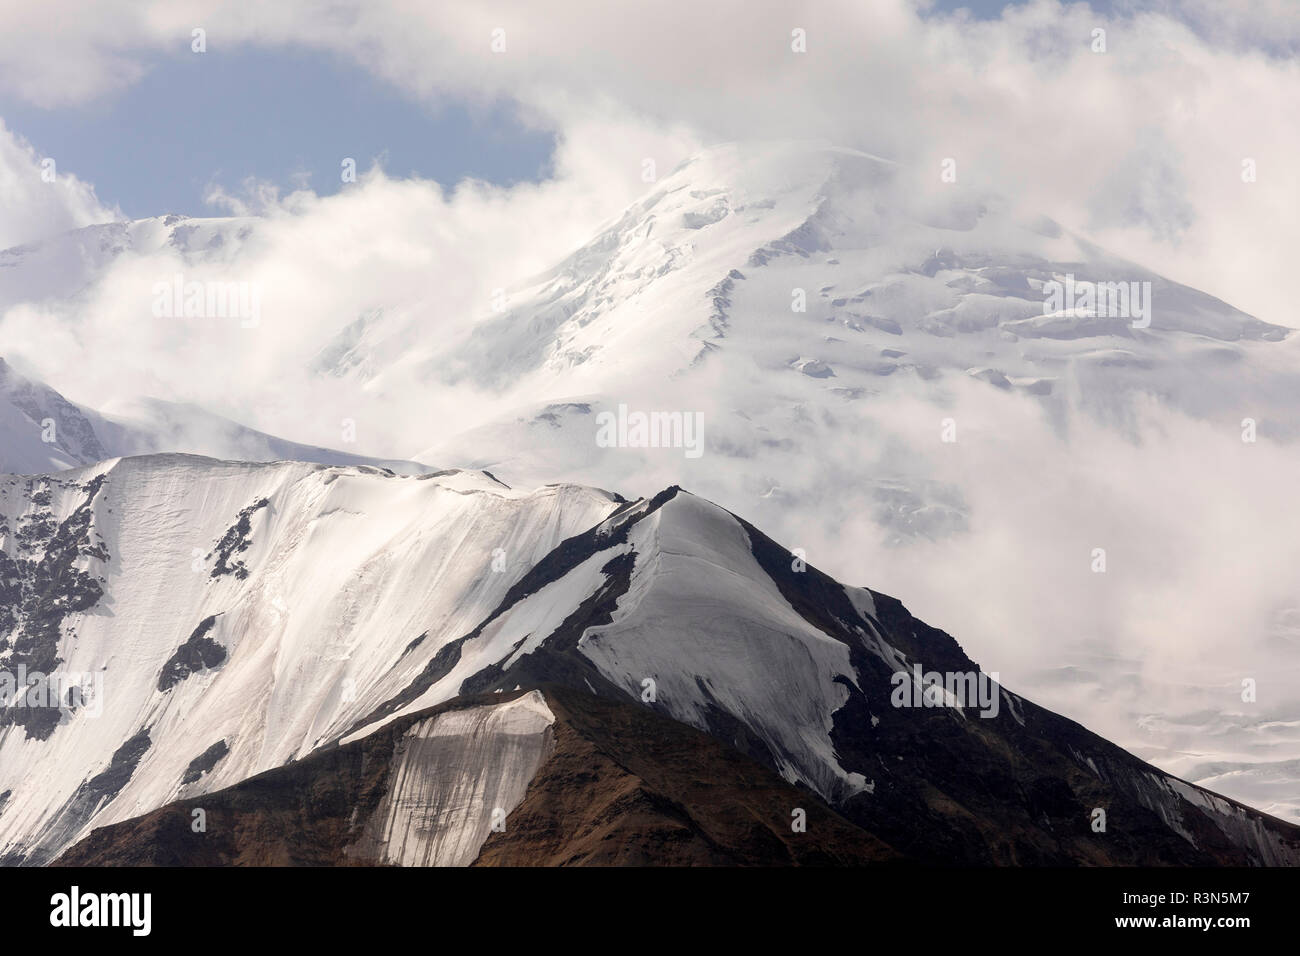 Pamir mountains with peak Lenin, which is shrouded by clouds, Kyrgyzstan Stock Photo